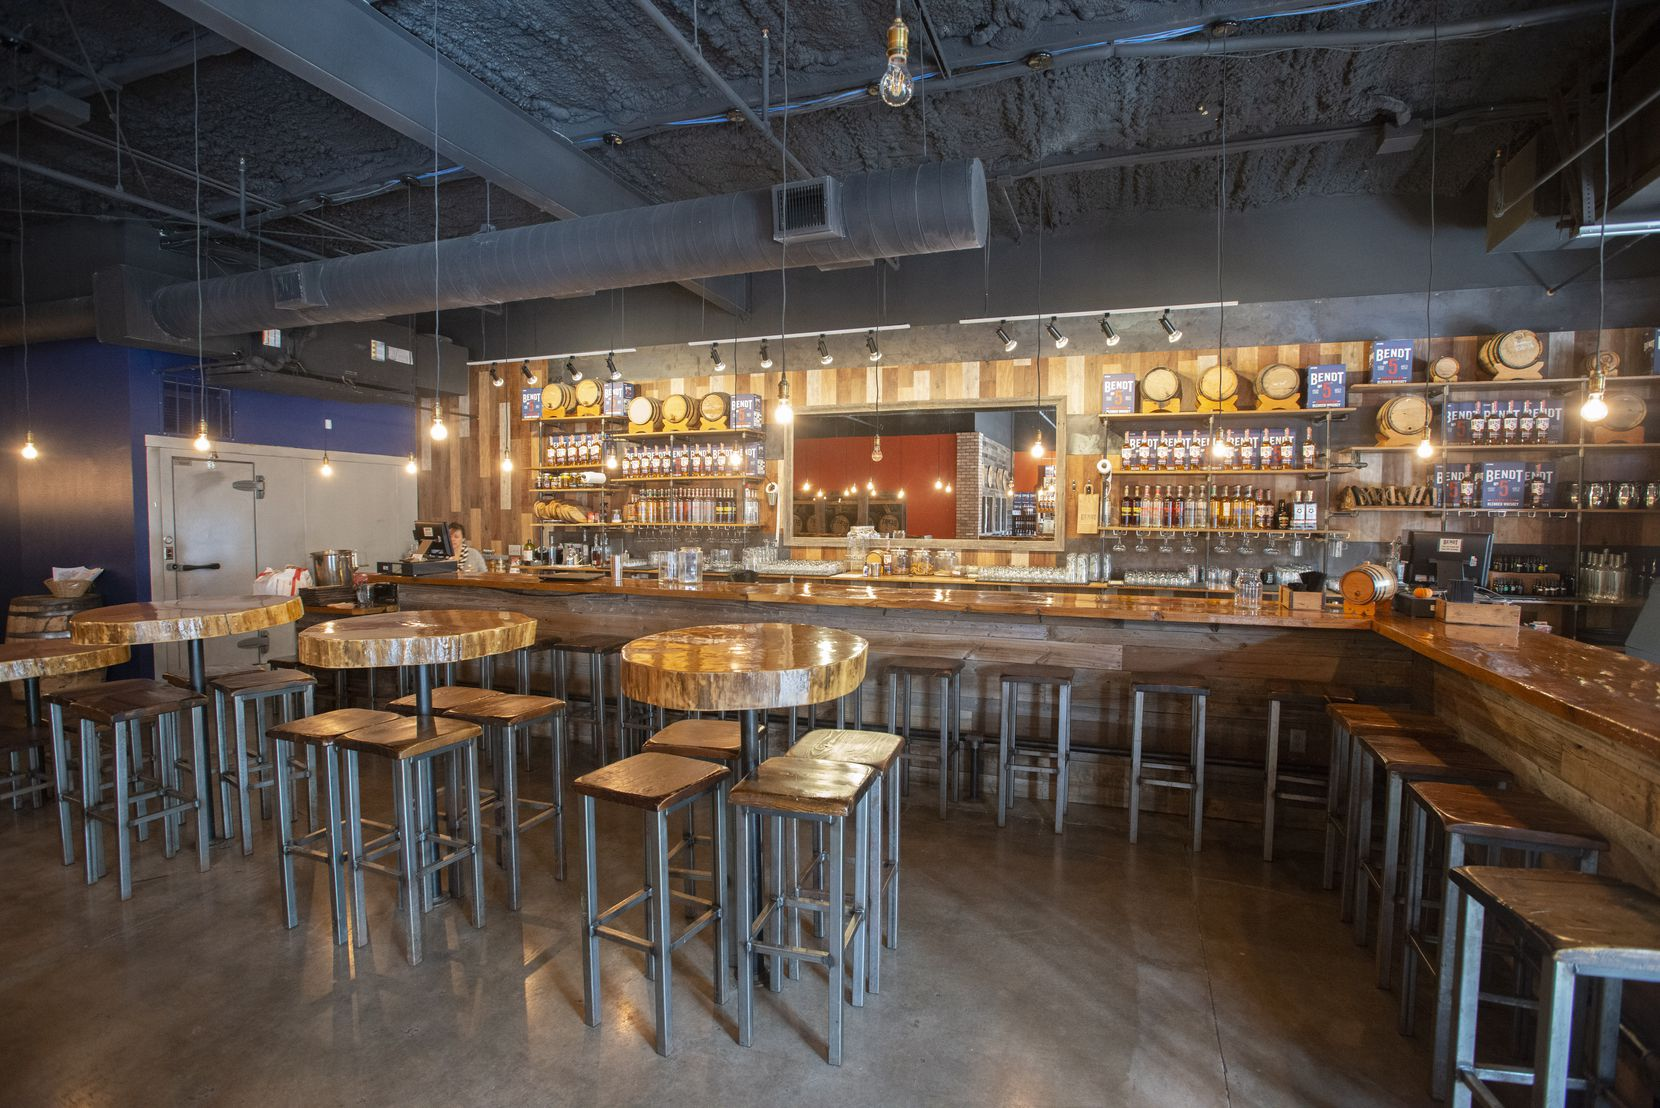 Bar area at Bendt Distilling Co. on November 13, 2019 in Lewisville, Tx. (Robert W. Hart/Special Contributor)